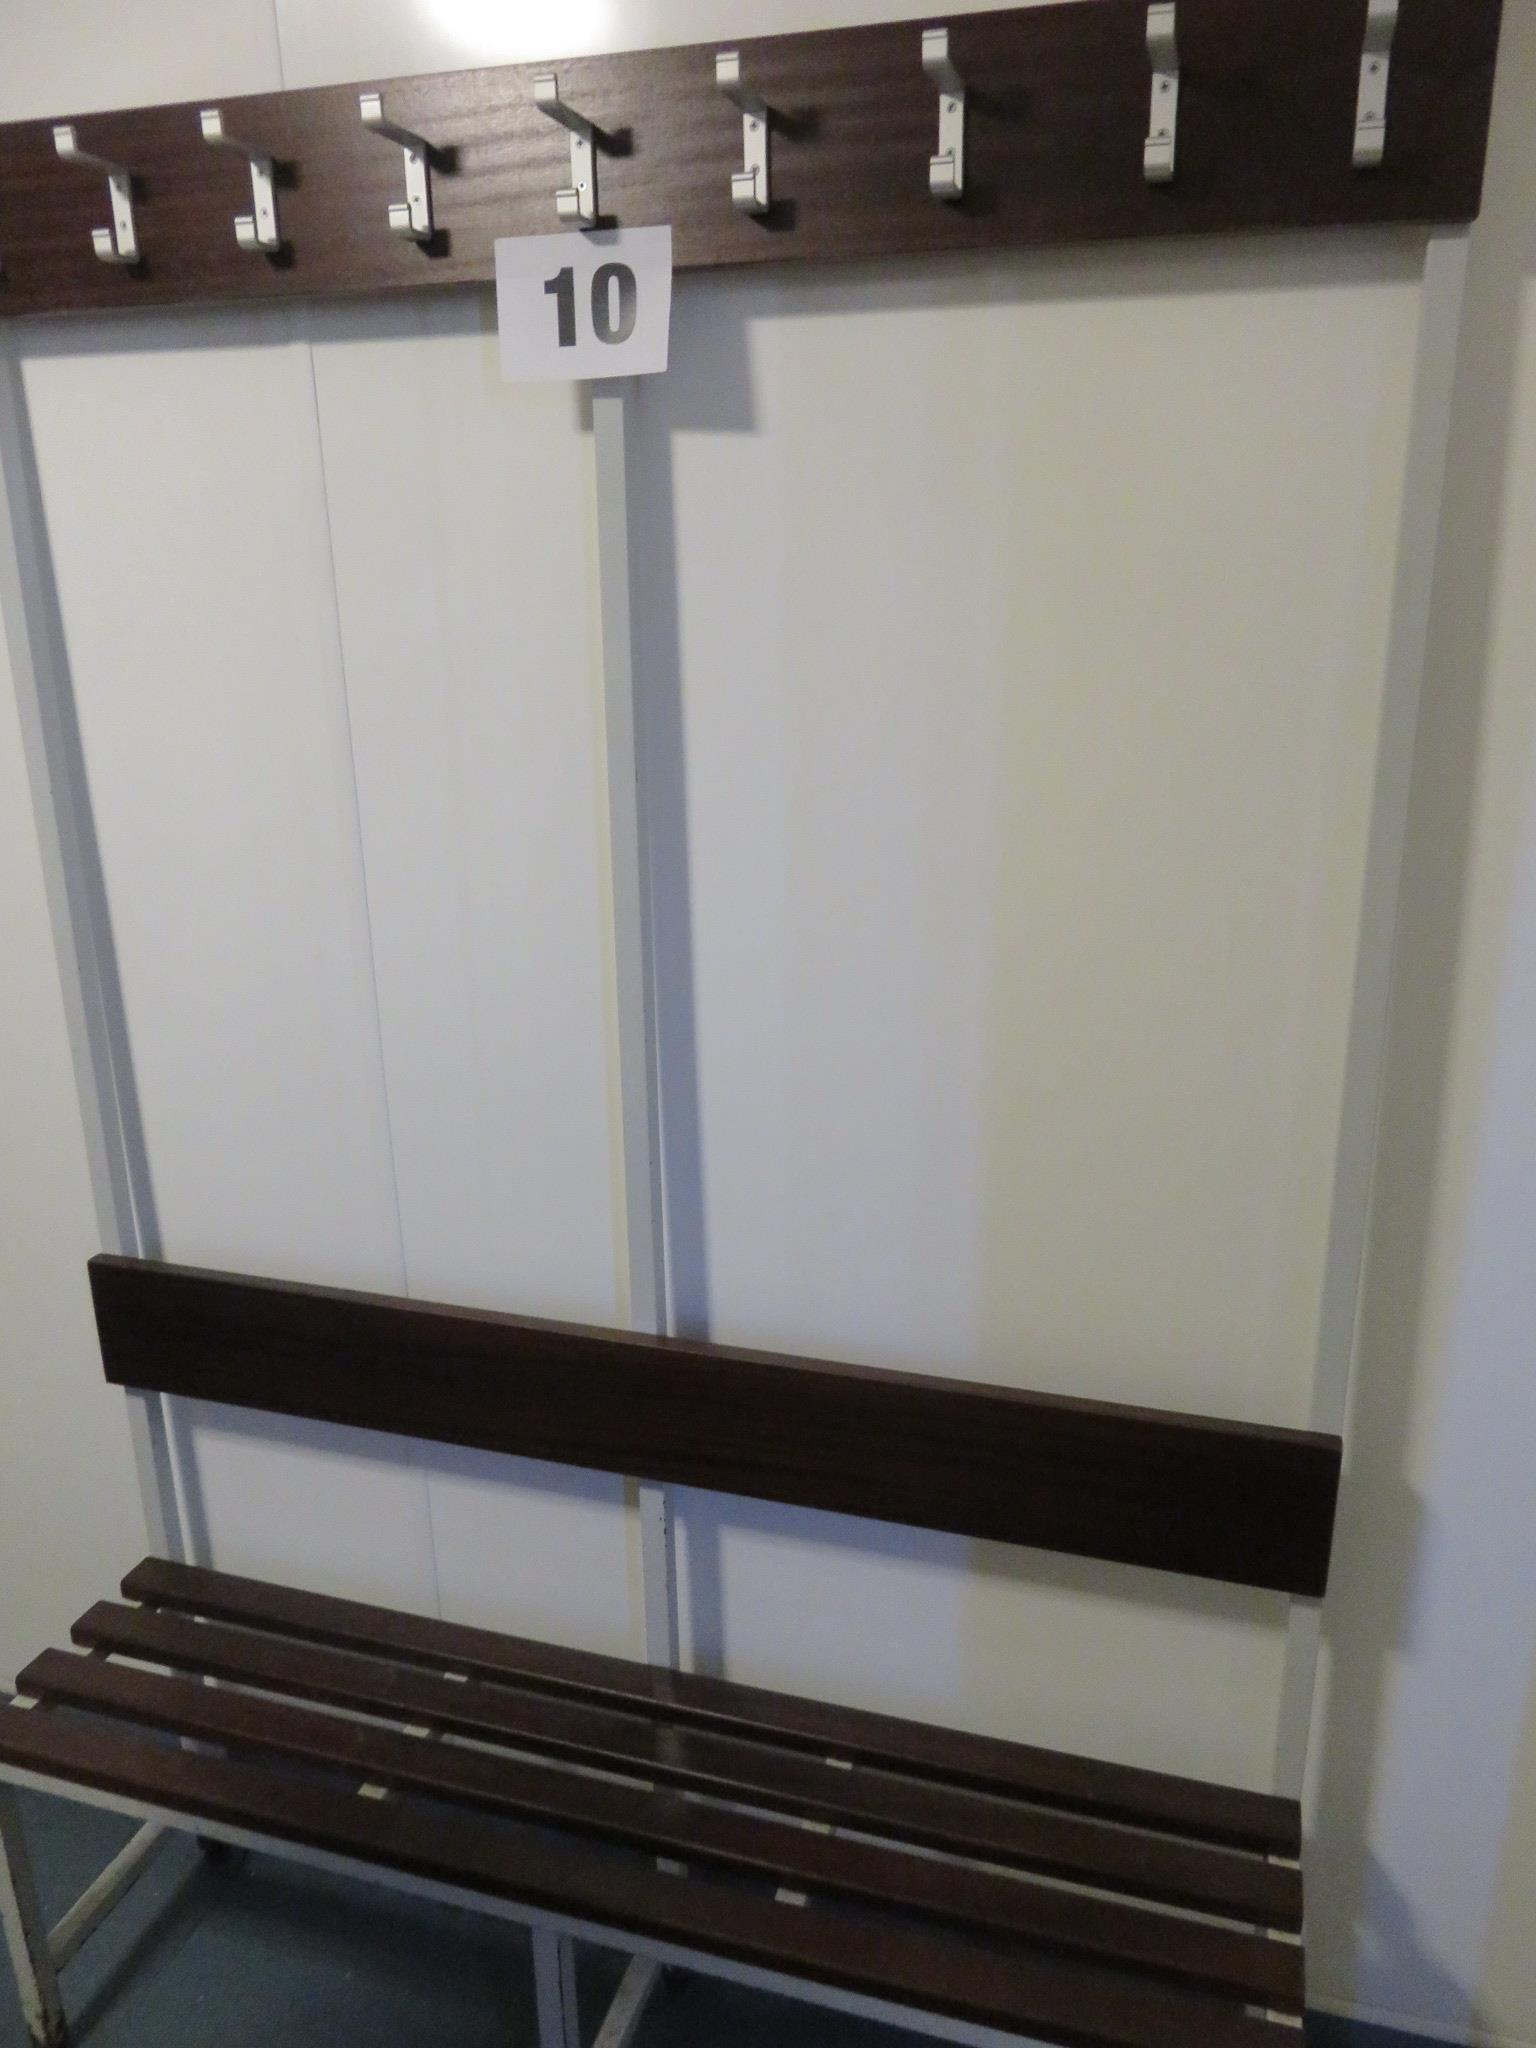 Lot 10 - 2 x Free standing Bench & Coat Hooks. Aoprox. 1200 x 1800mm high. Lift out £10